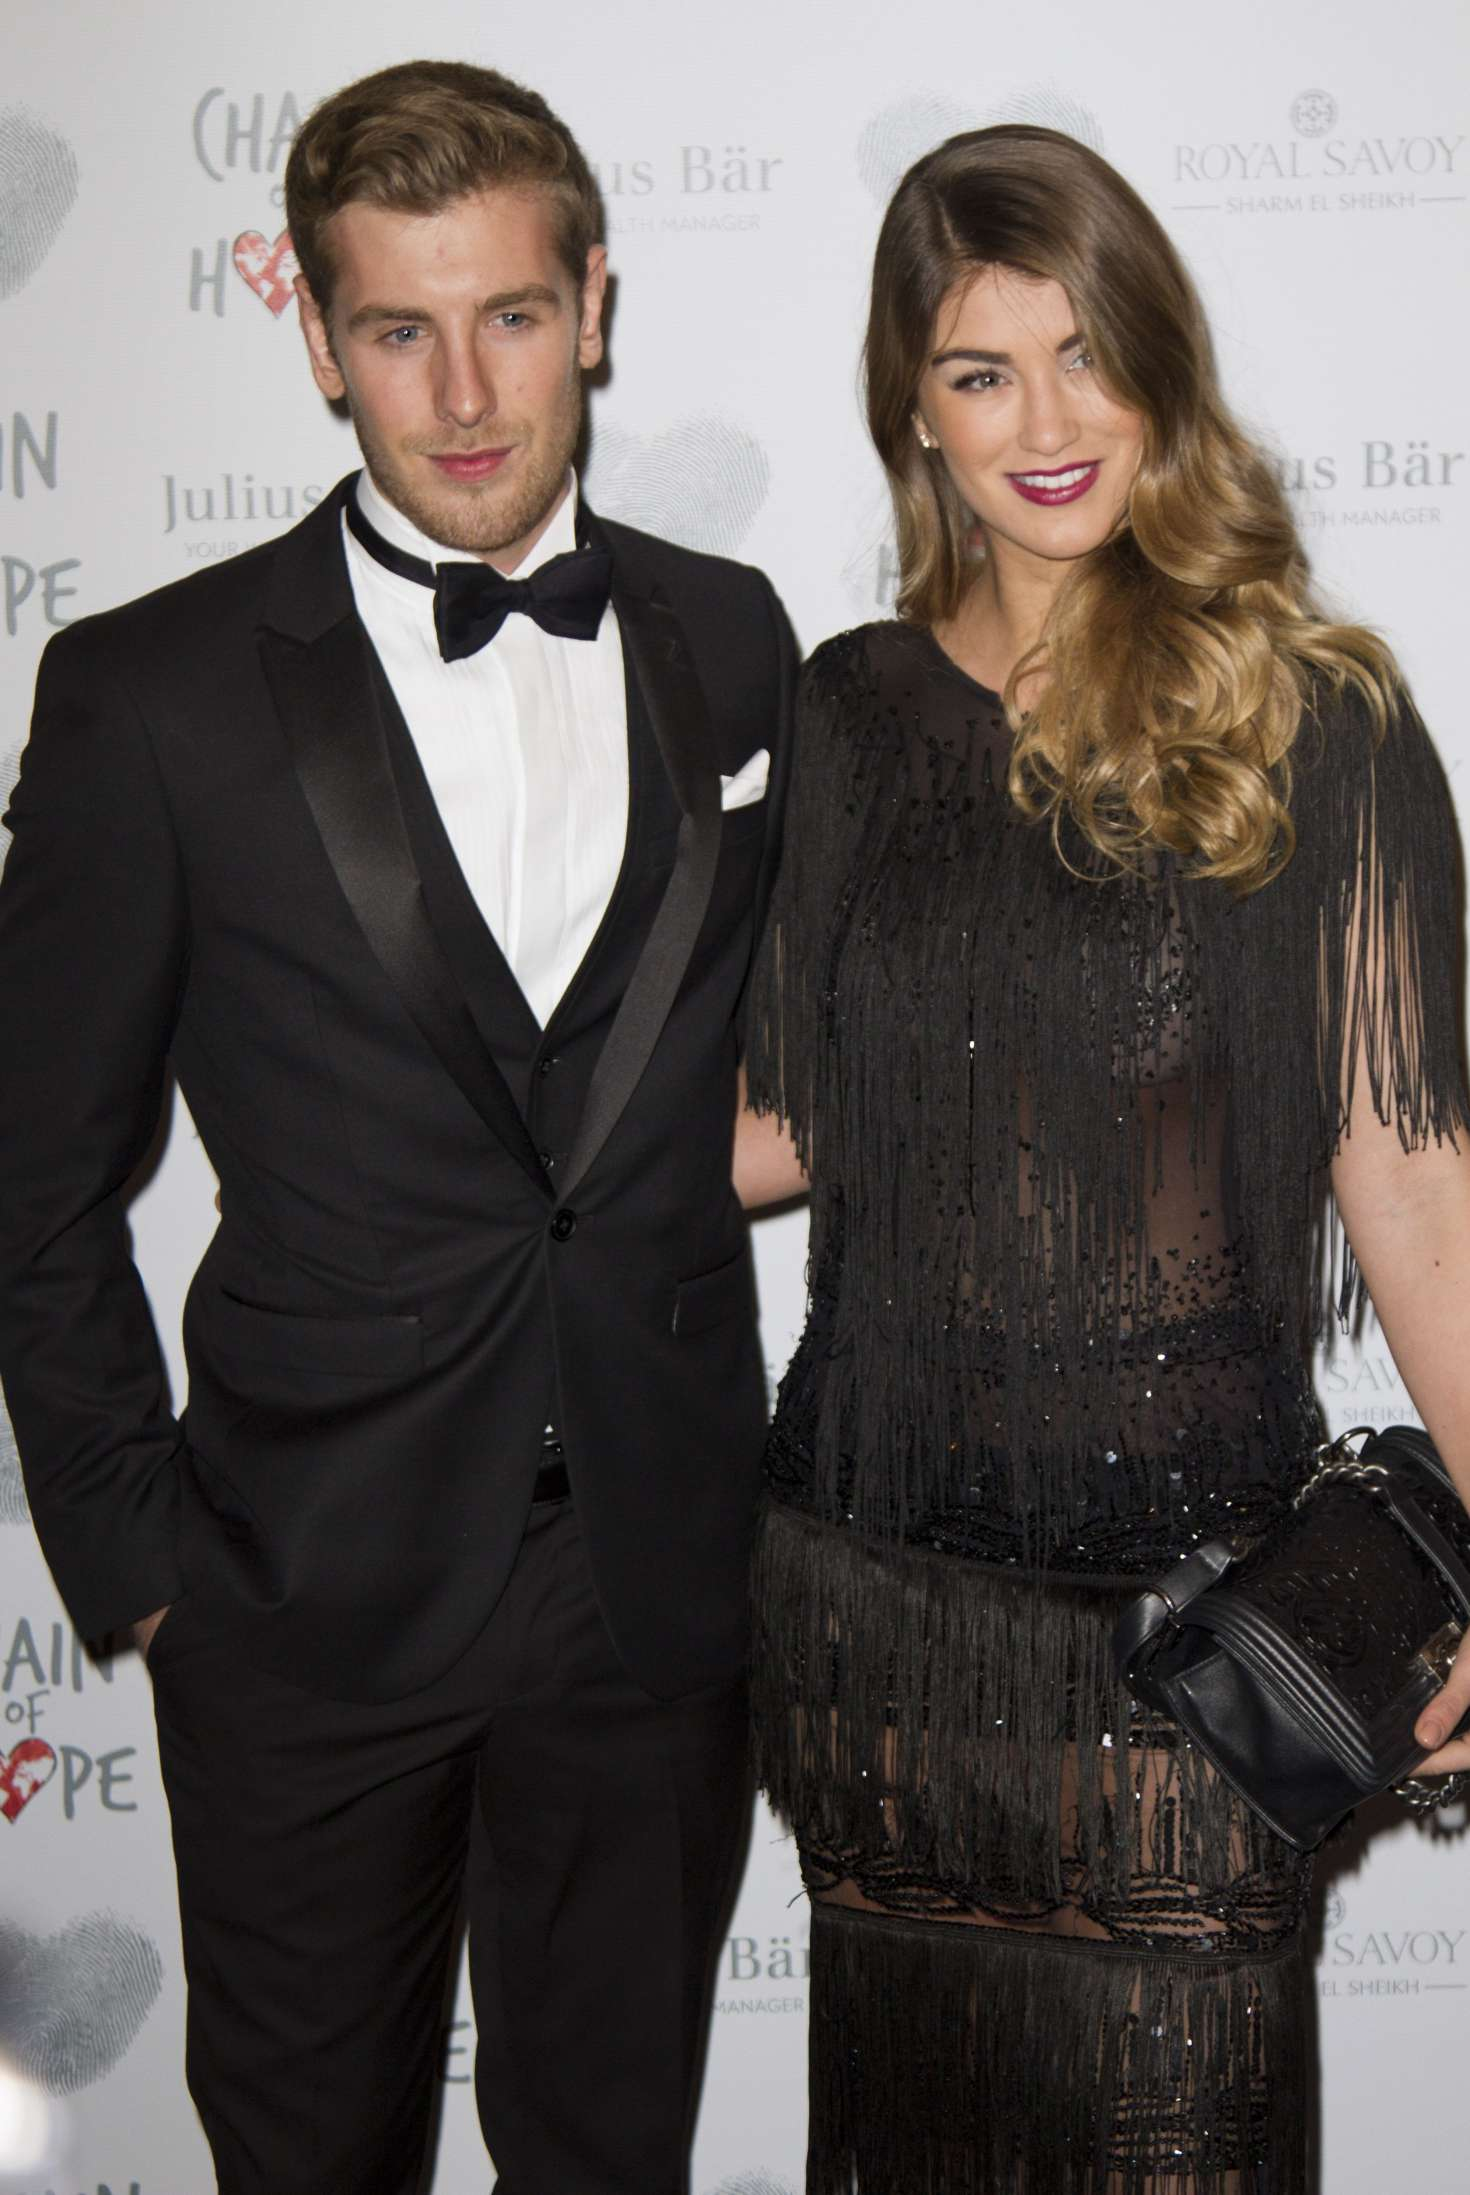 Amy Willerton 2016 : Amy Willerton: Chain Of Hope Annual Gala Ball 2016 -21